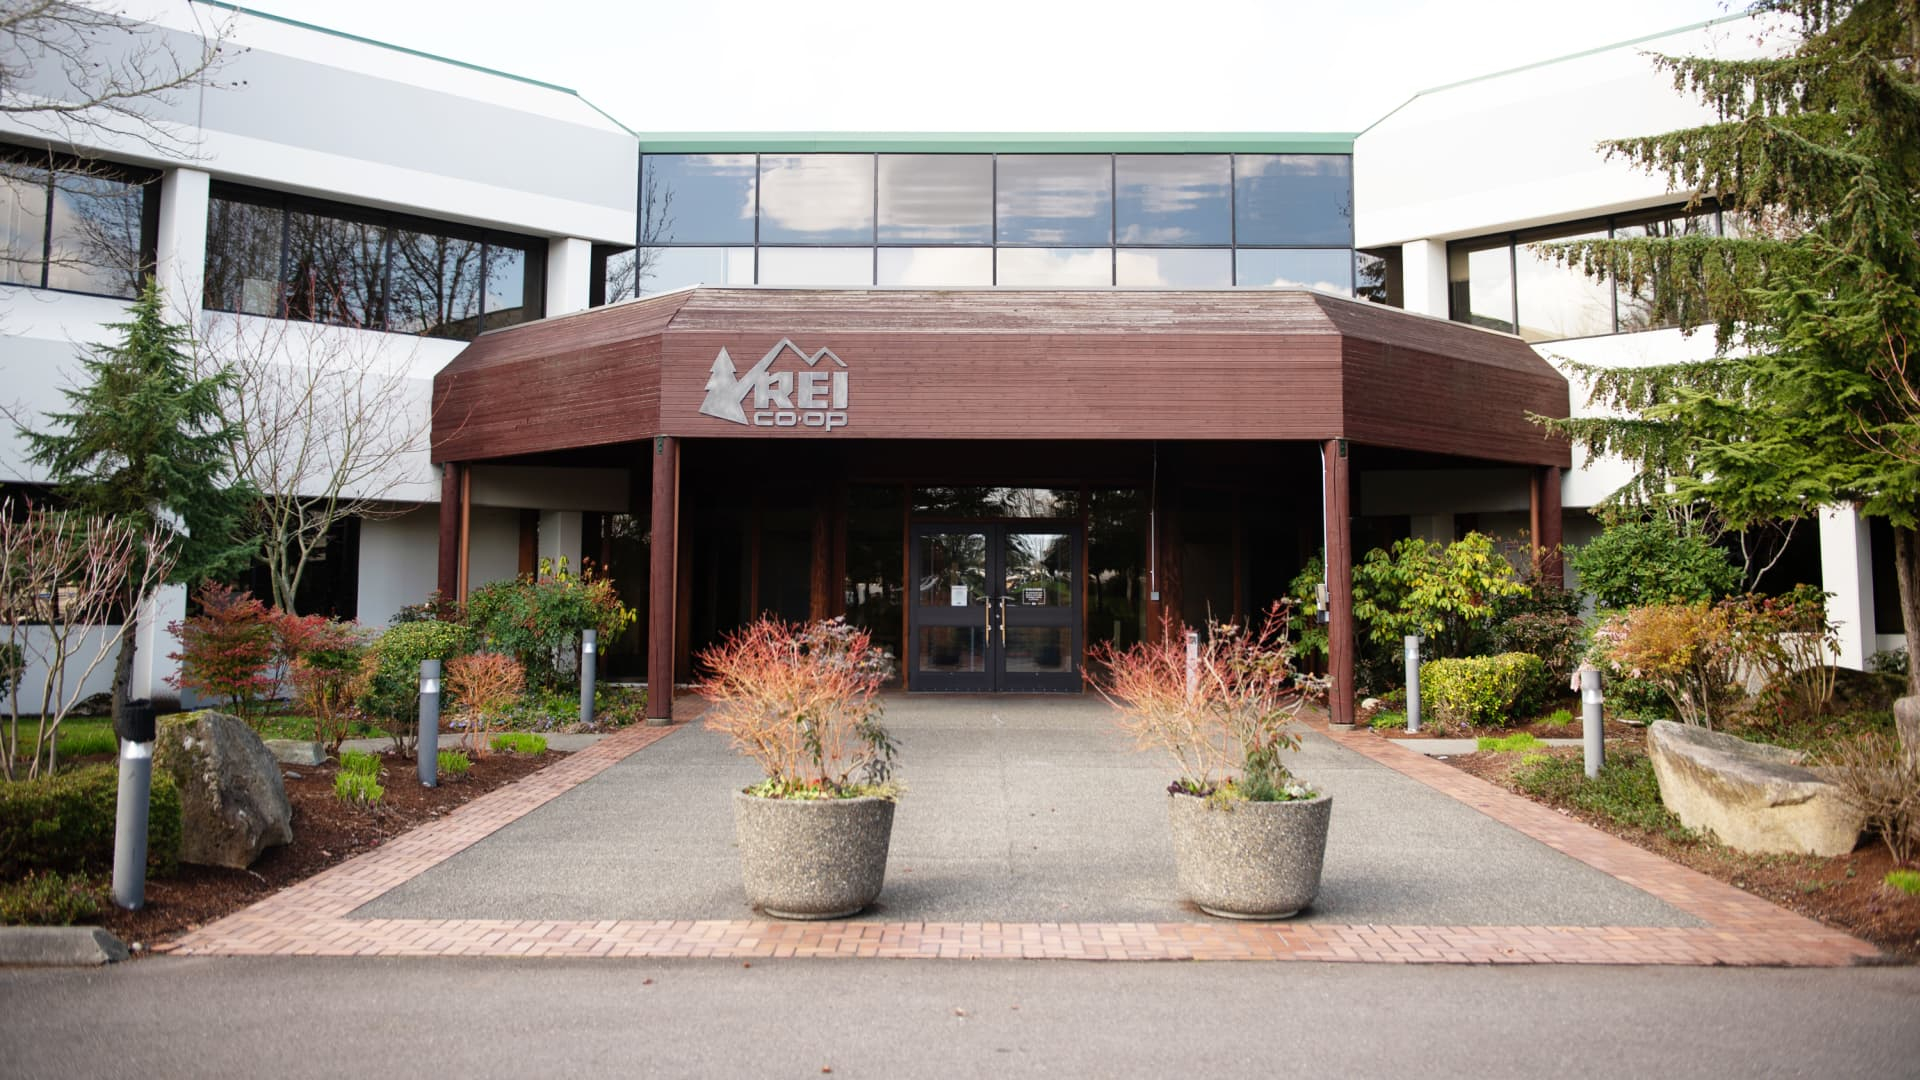 The Recreational Equipment Inc. (REI) headquarters stands in Kent, Washington, U.S., on Wednesday, March 4, 2020.